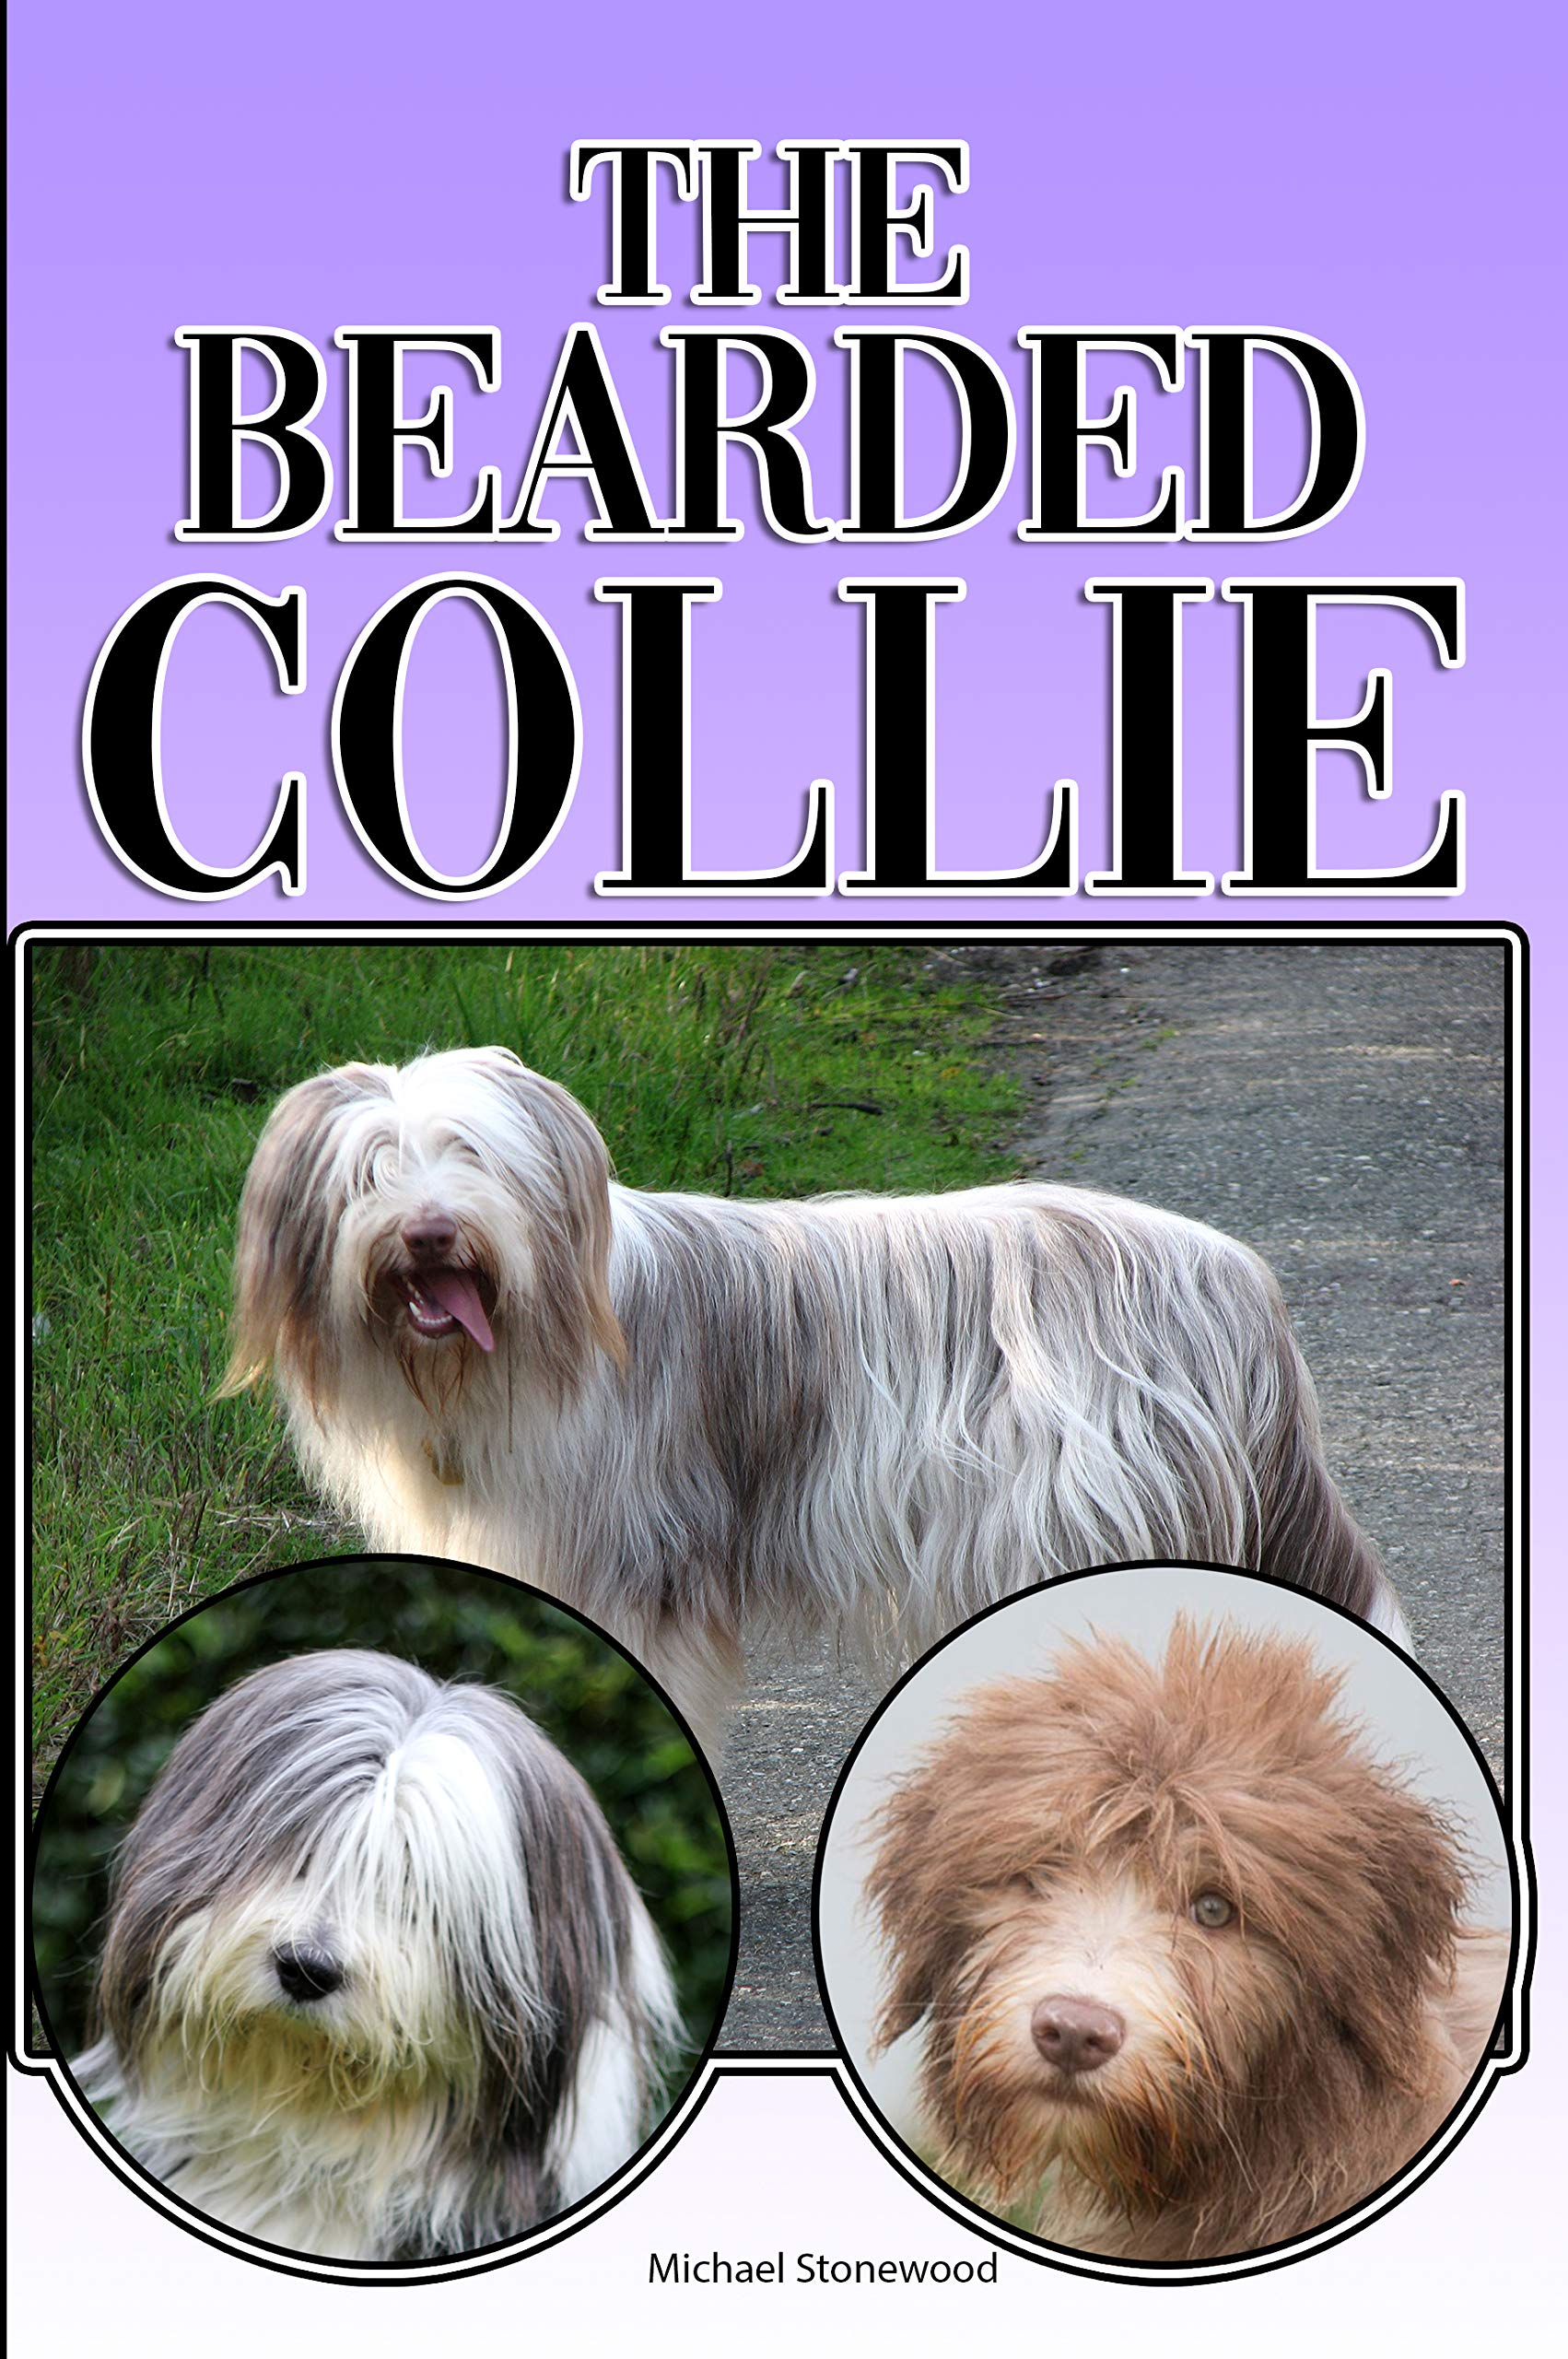 The Bearded Collie: A Complete and Comprehensive Beginners Guide to: Buying, Owning, Health, Grooming, Training, Obedience, Understanding and Caring for Your Bearded Collie